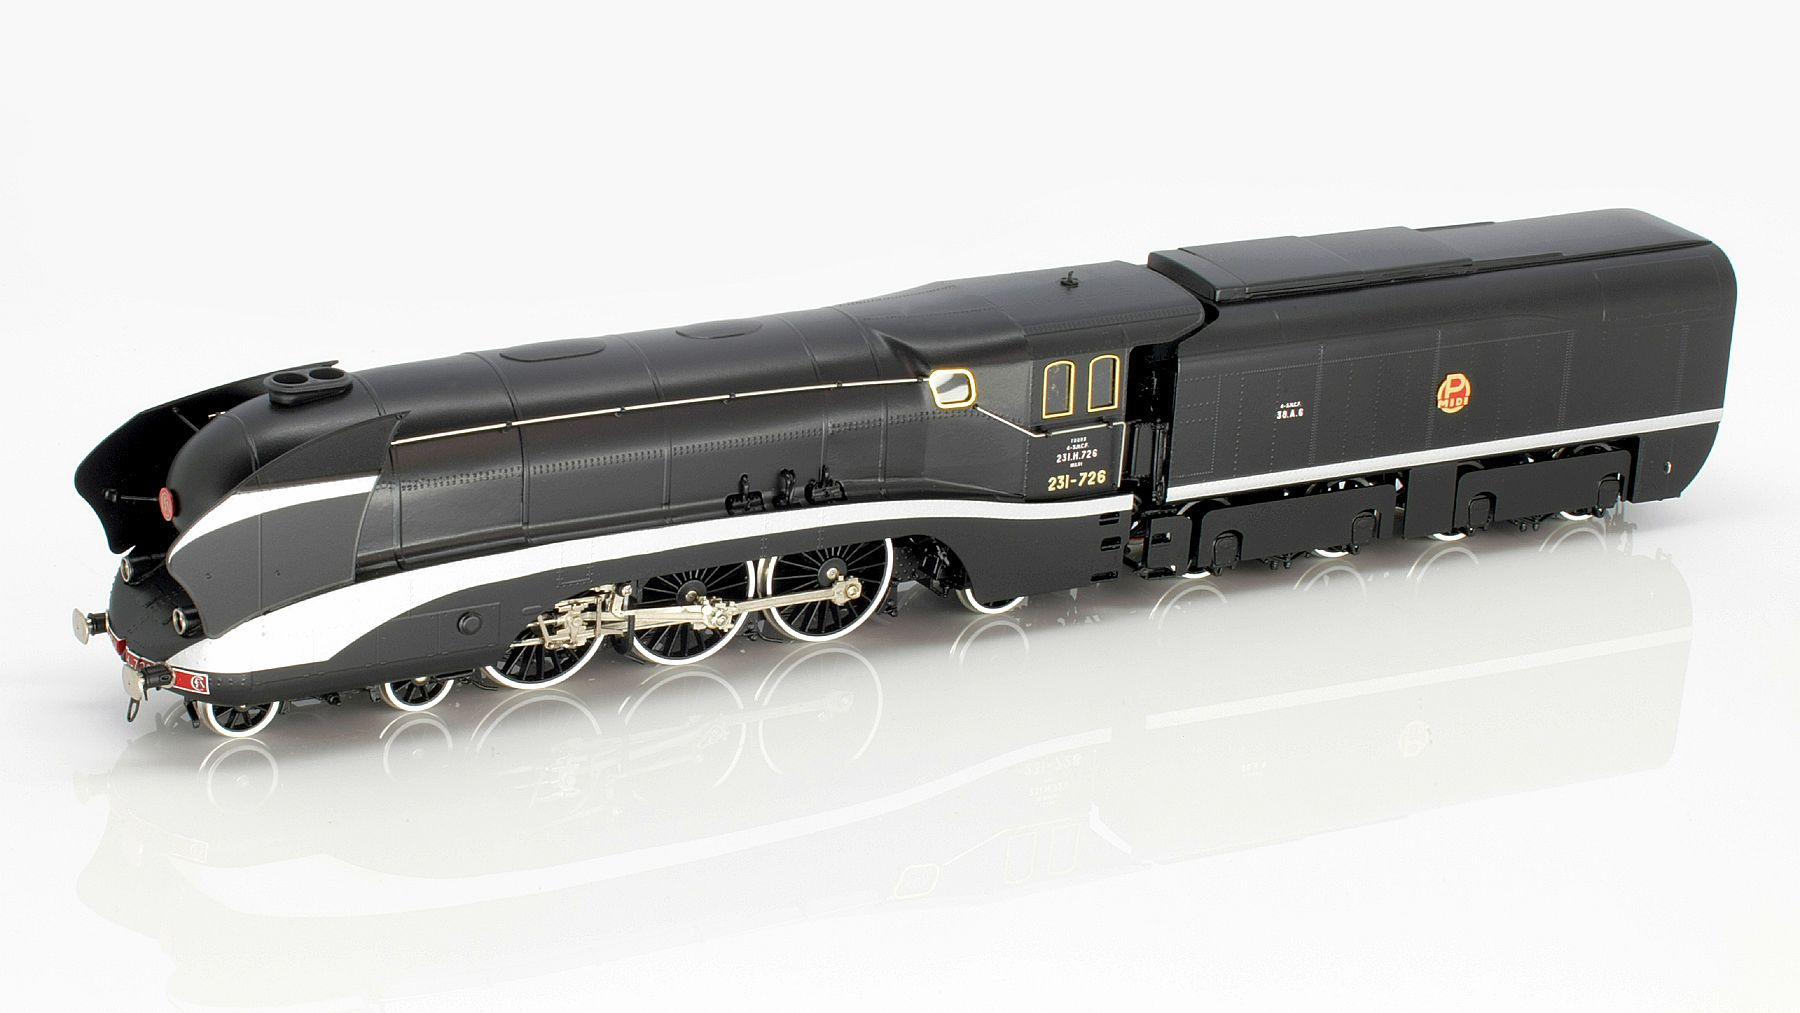 SNCF 231 H 726 Streamlined Steam Locomotive HO-011/4